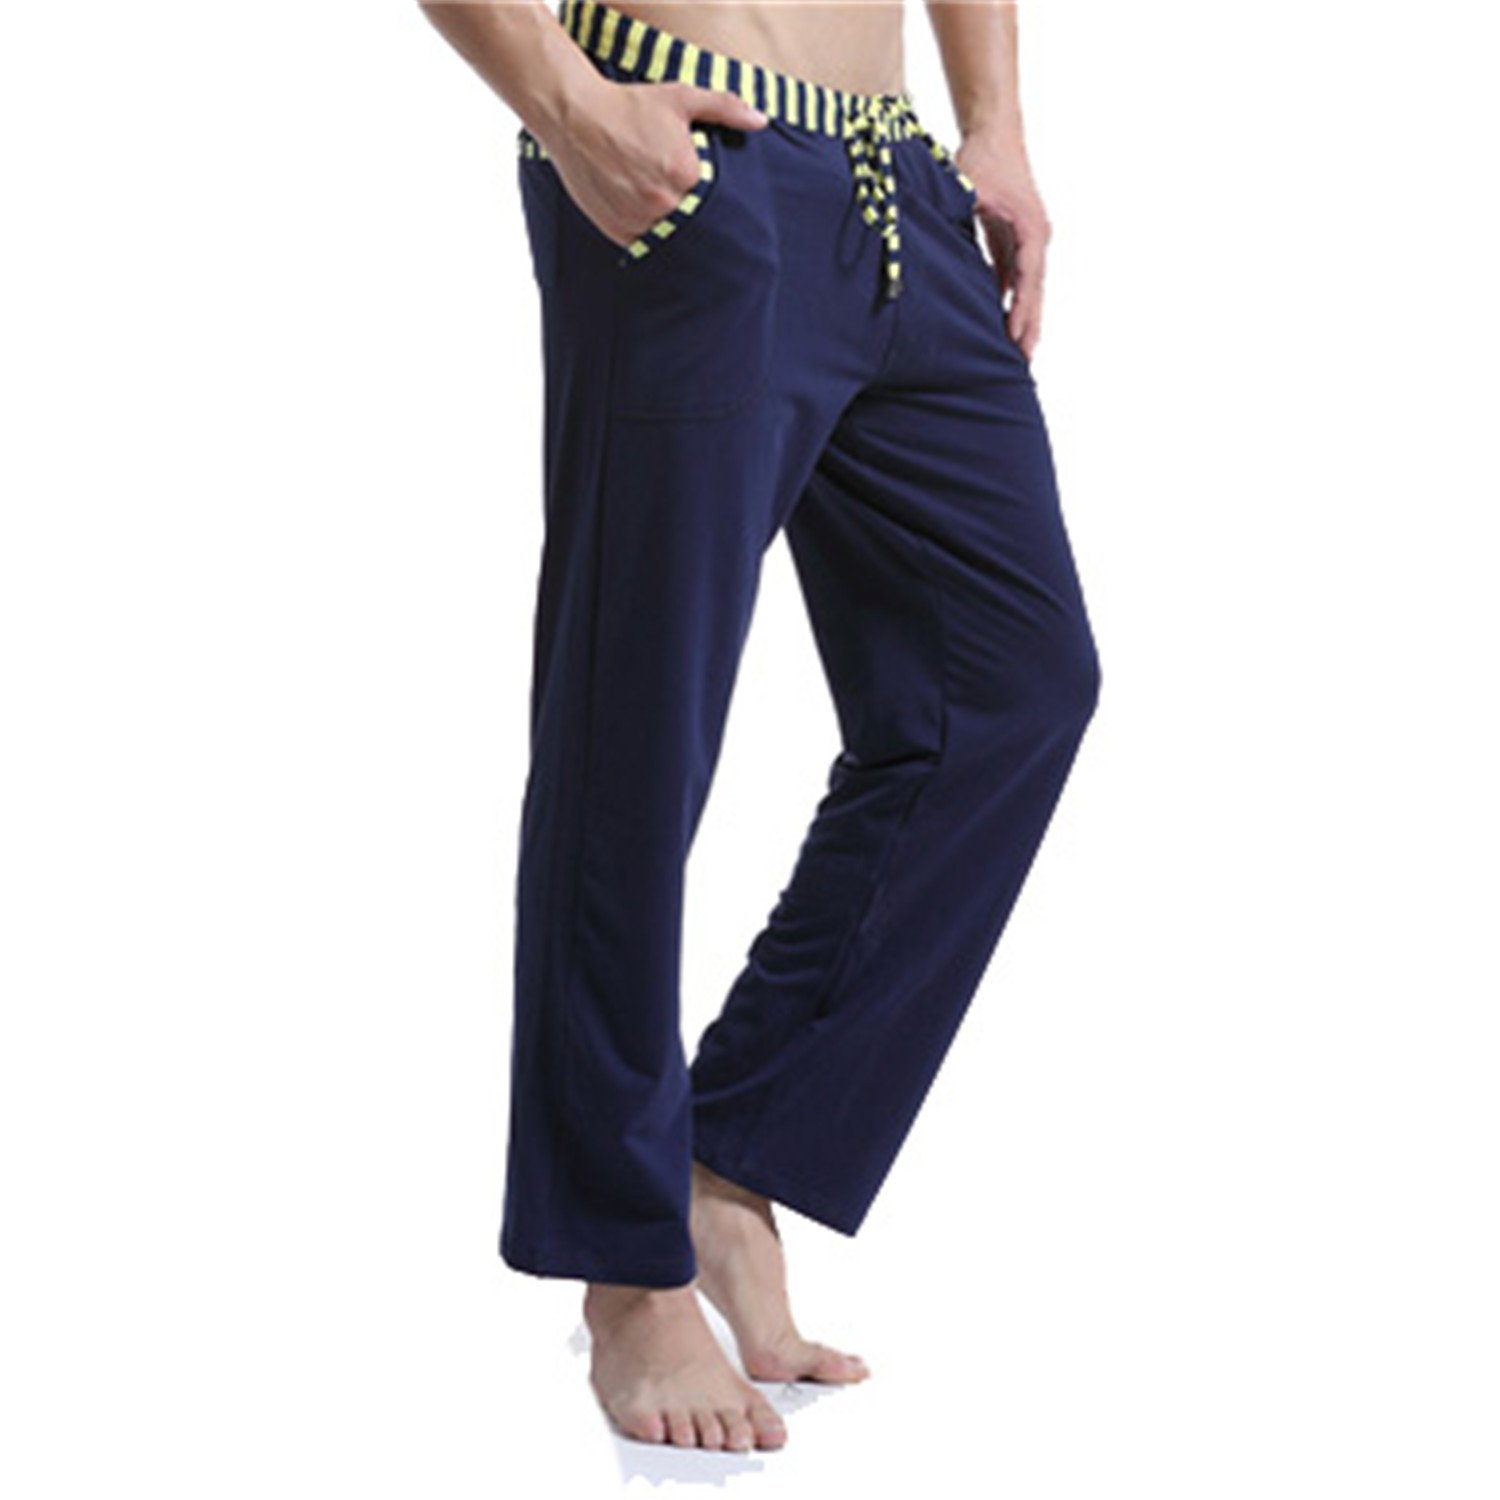 Orcan Bluce Pajamas Pants Sexy Warm Cotton Mens Sleep Bottoms Fashion Sleeping Pants Yogo Wear at Amazon Mens Clothing store: